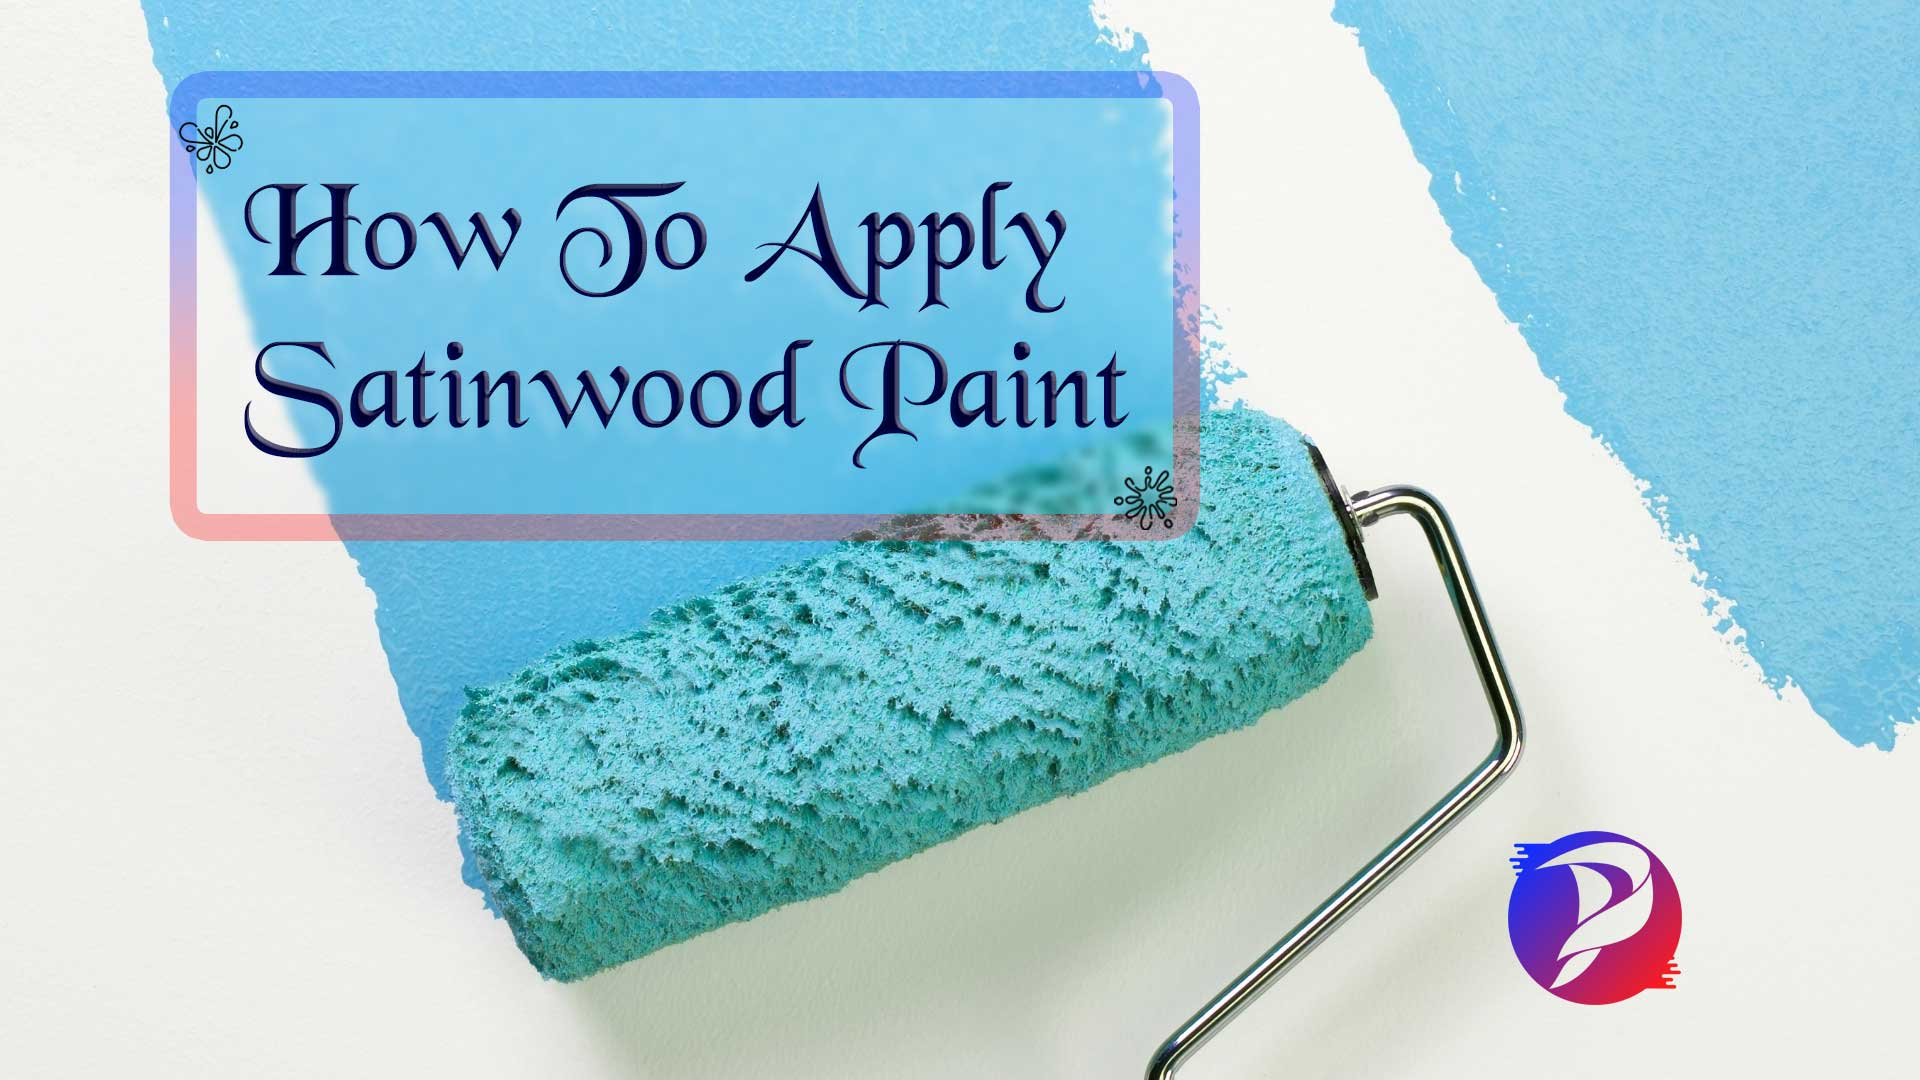 How to apply satinwood paint